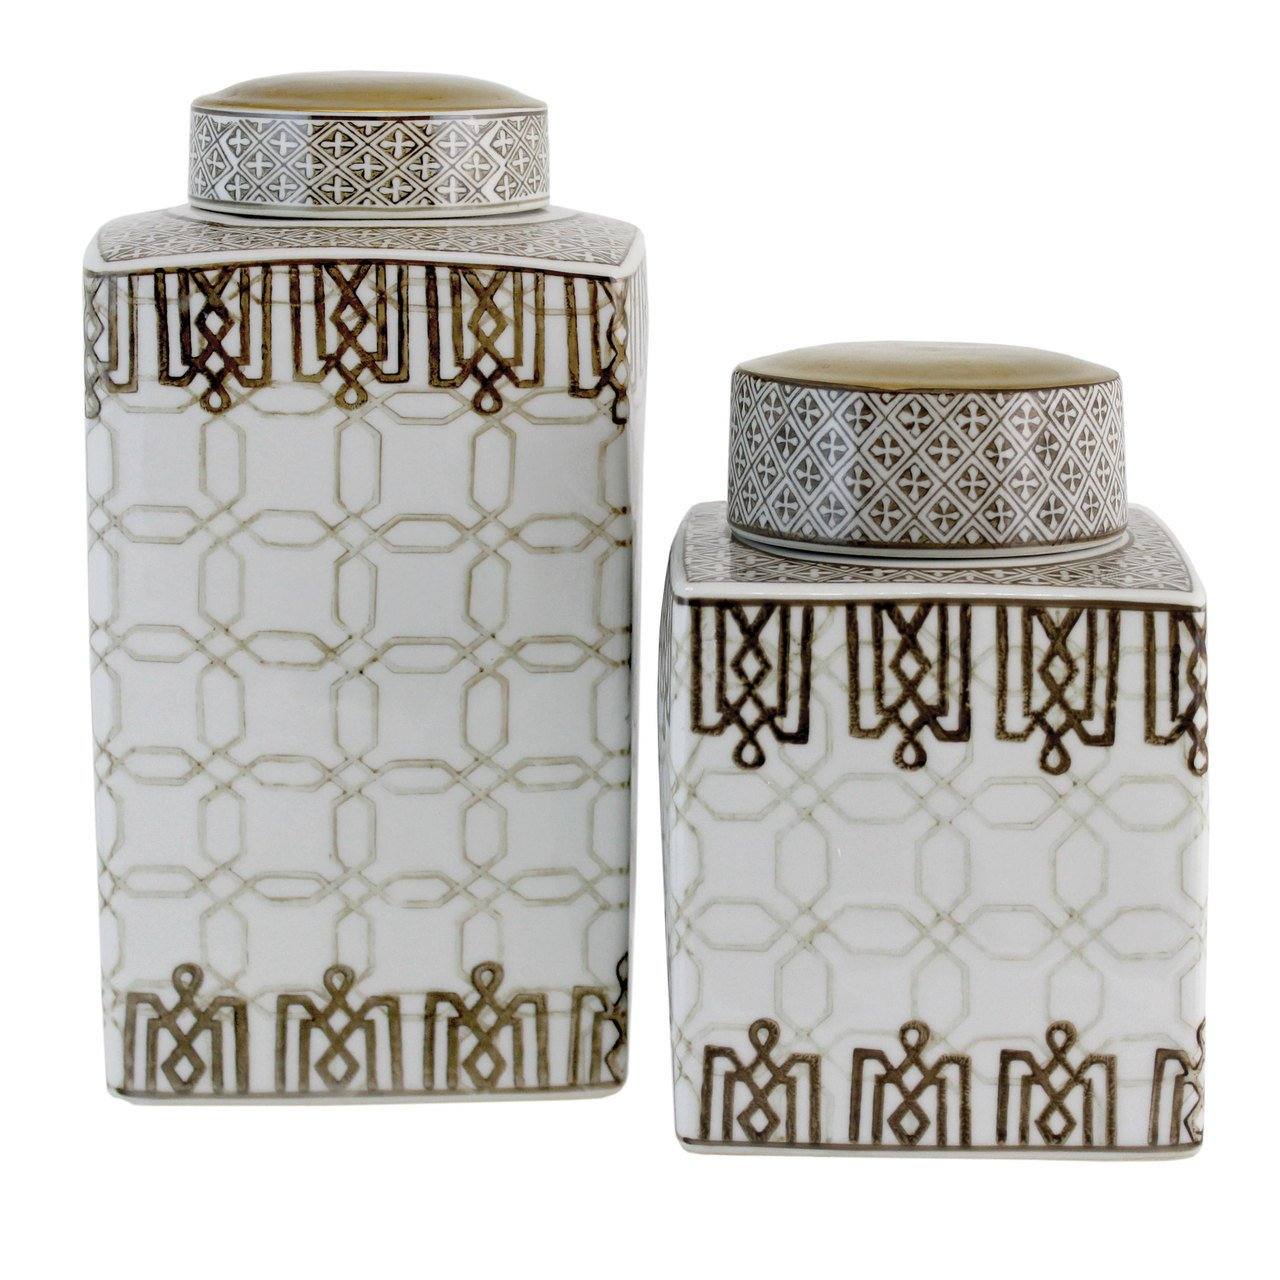 TIC Collection 15-126 Morris Jars, Set of 2 by TIC Collection